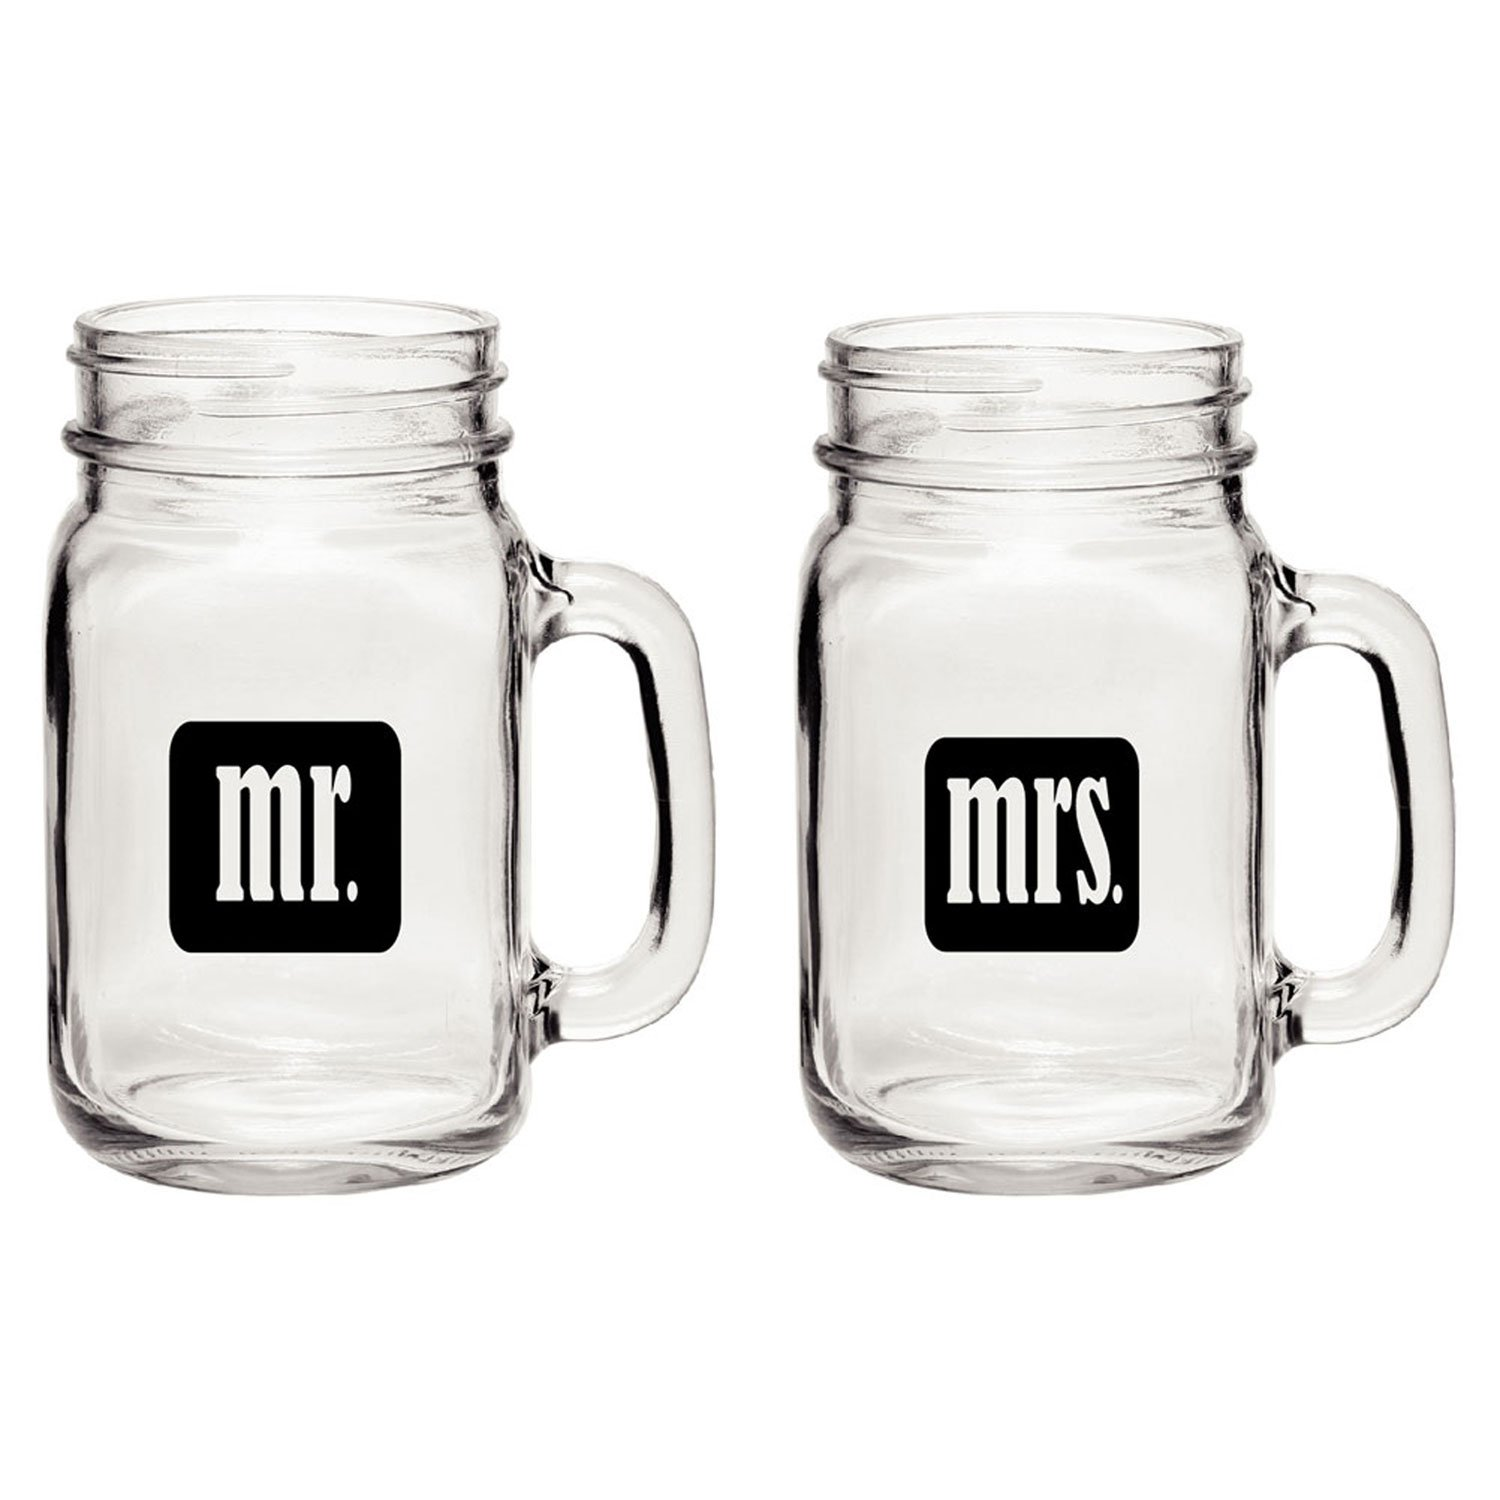 Mr. & Mrs. Mason Jars - Glass Drinking Glasses Set With Gift Box - For Couples - Engagement, Wedding, Anniversary, House Warming, Hostess Gift, 16 oz by Smart Tart Design (Image #2)